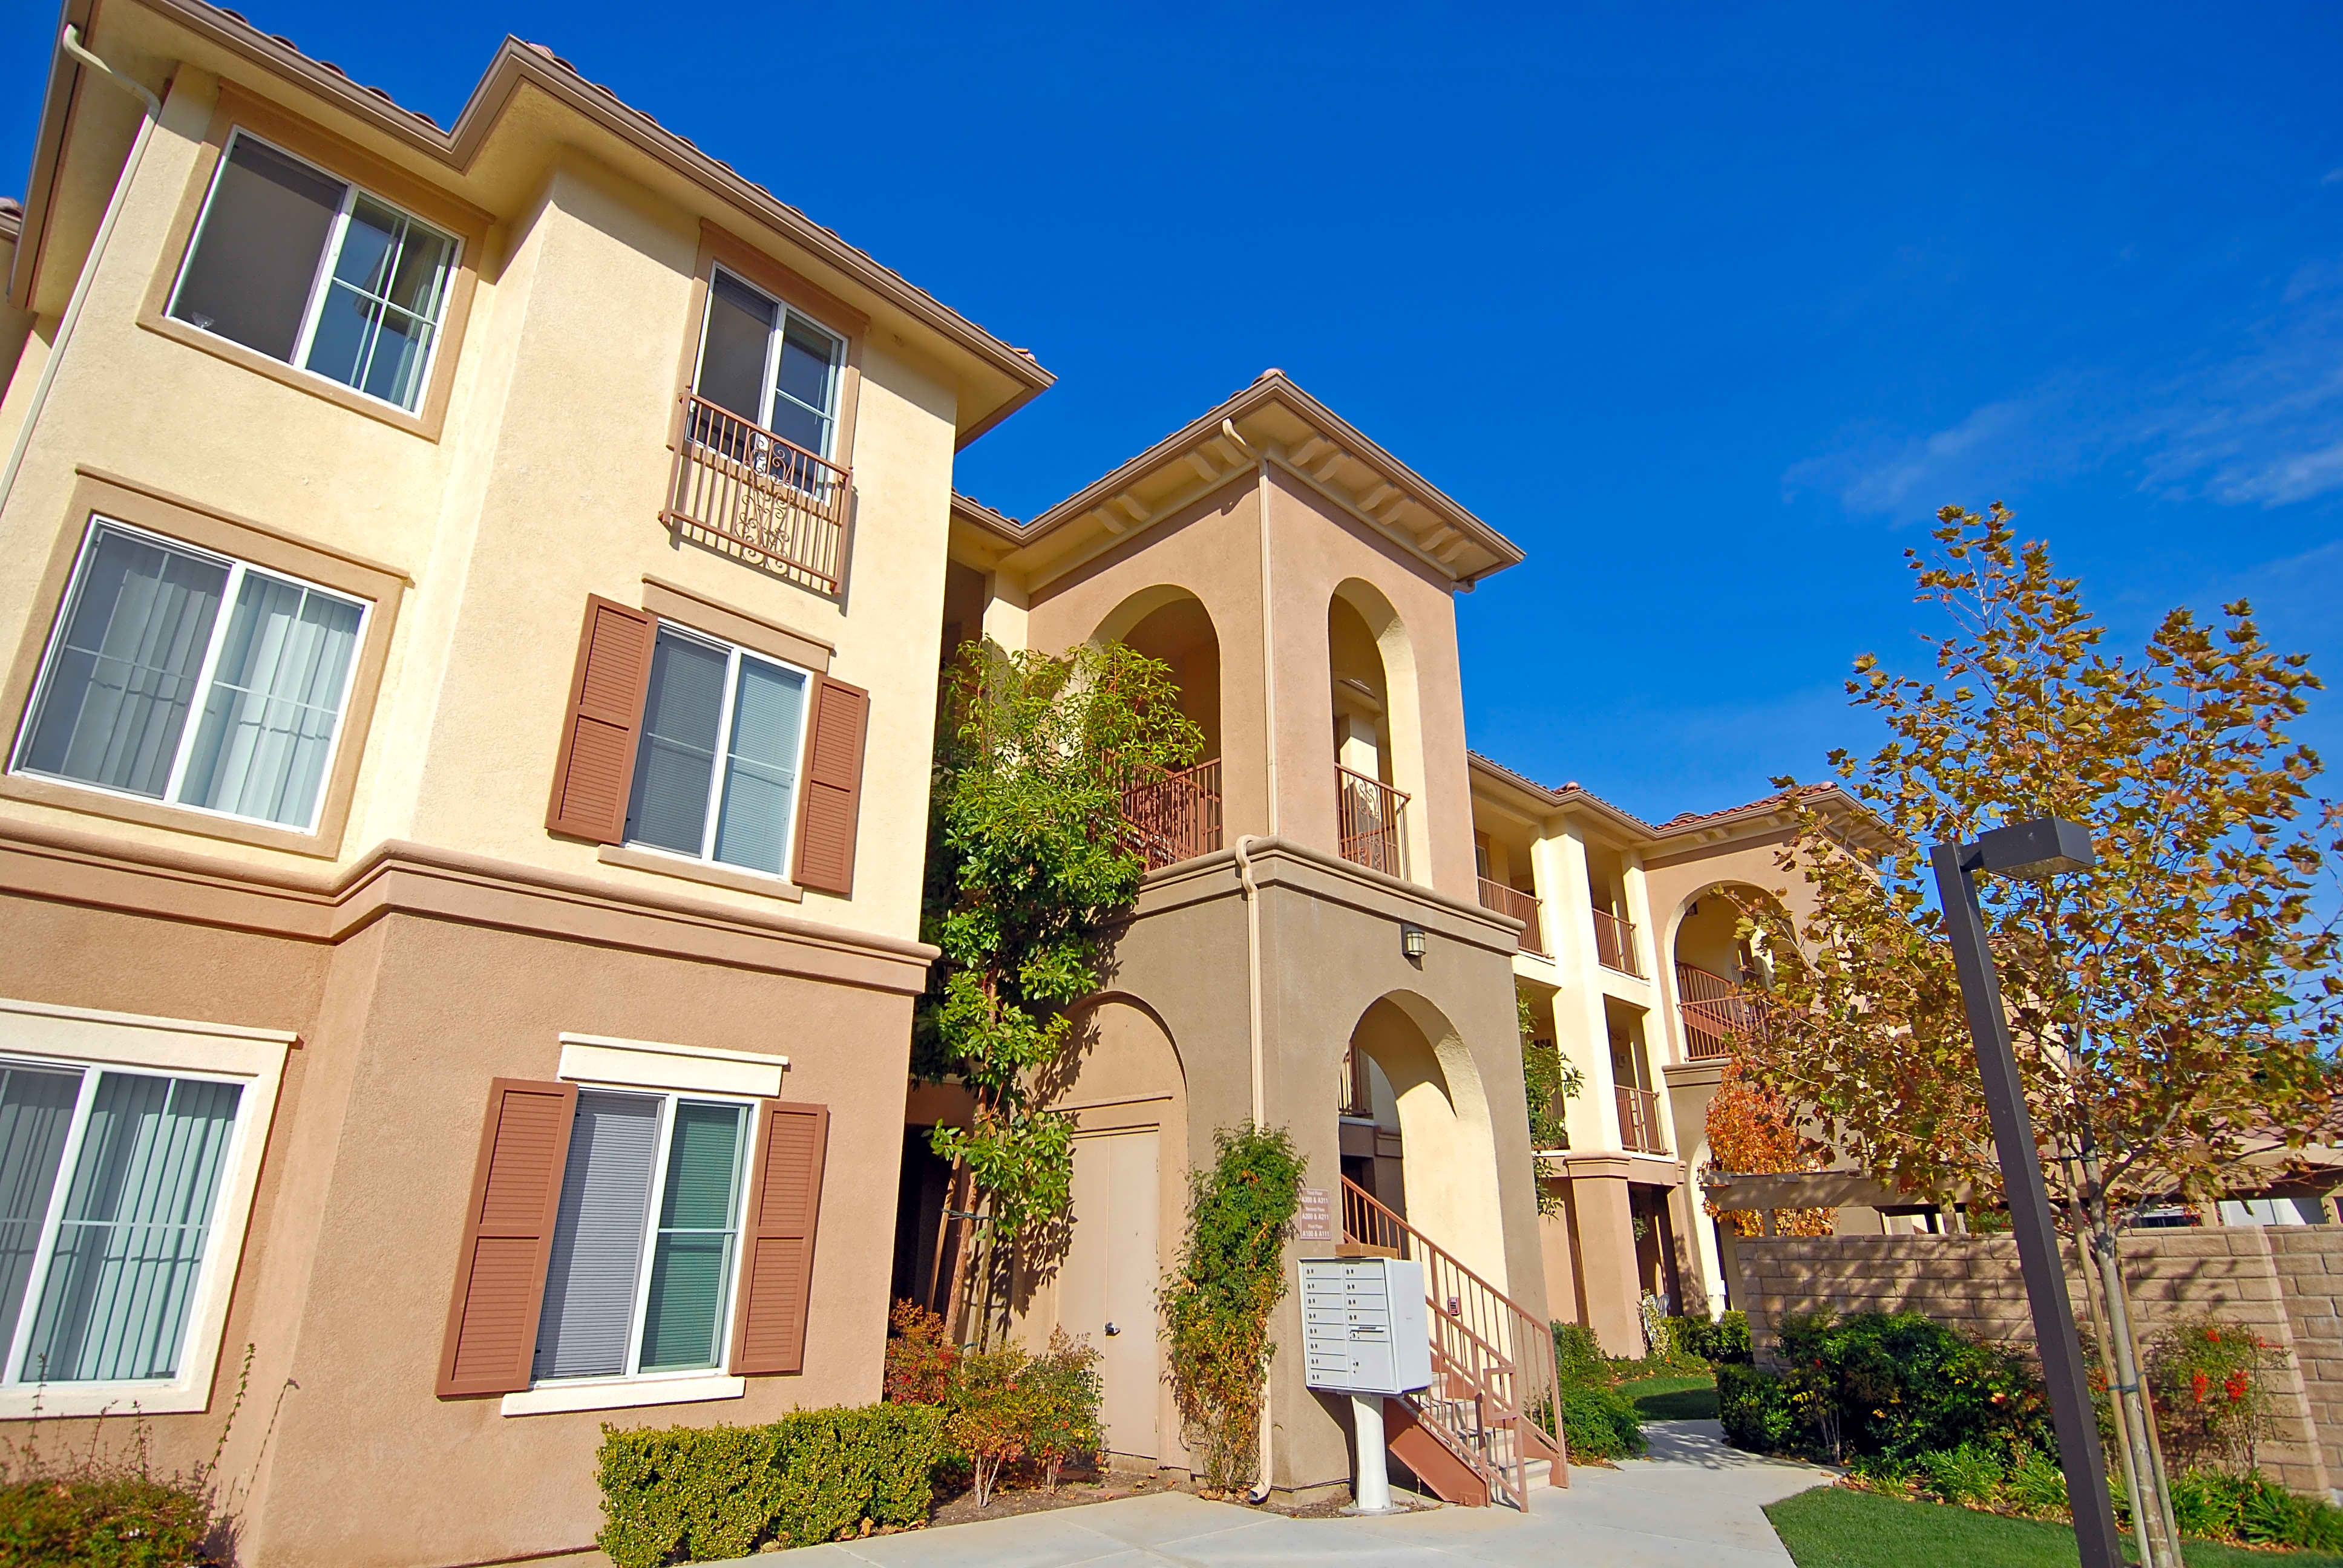 Photo: Simi Valley Apartment for Rent - $1520.00 / month; 1 Bd & 1 Ba